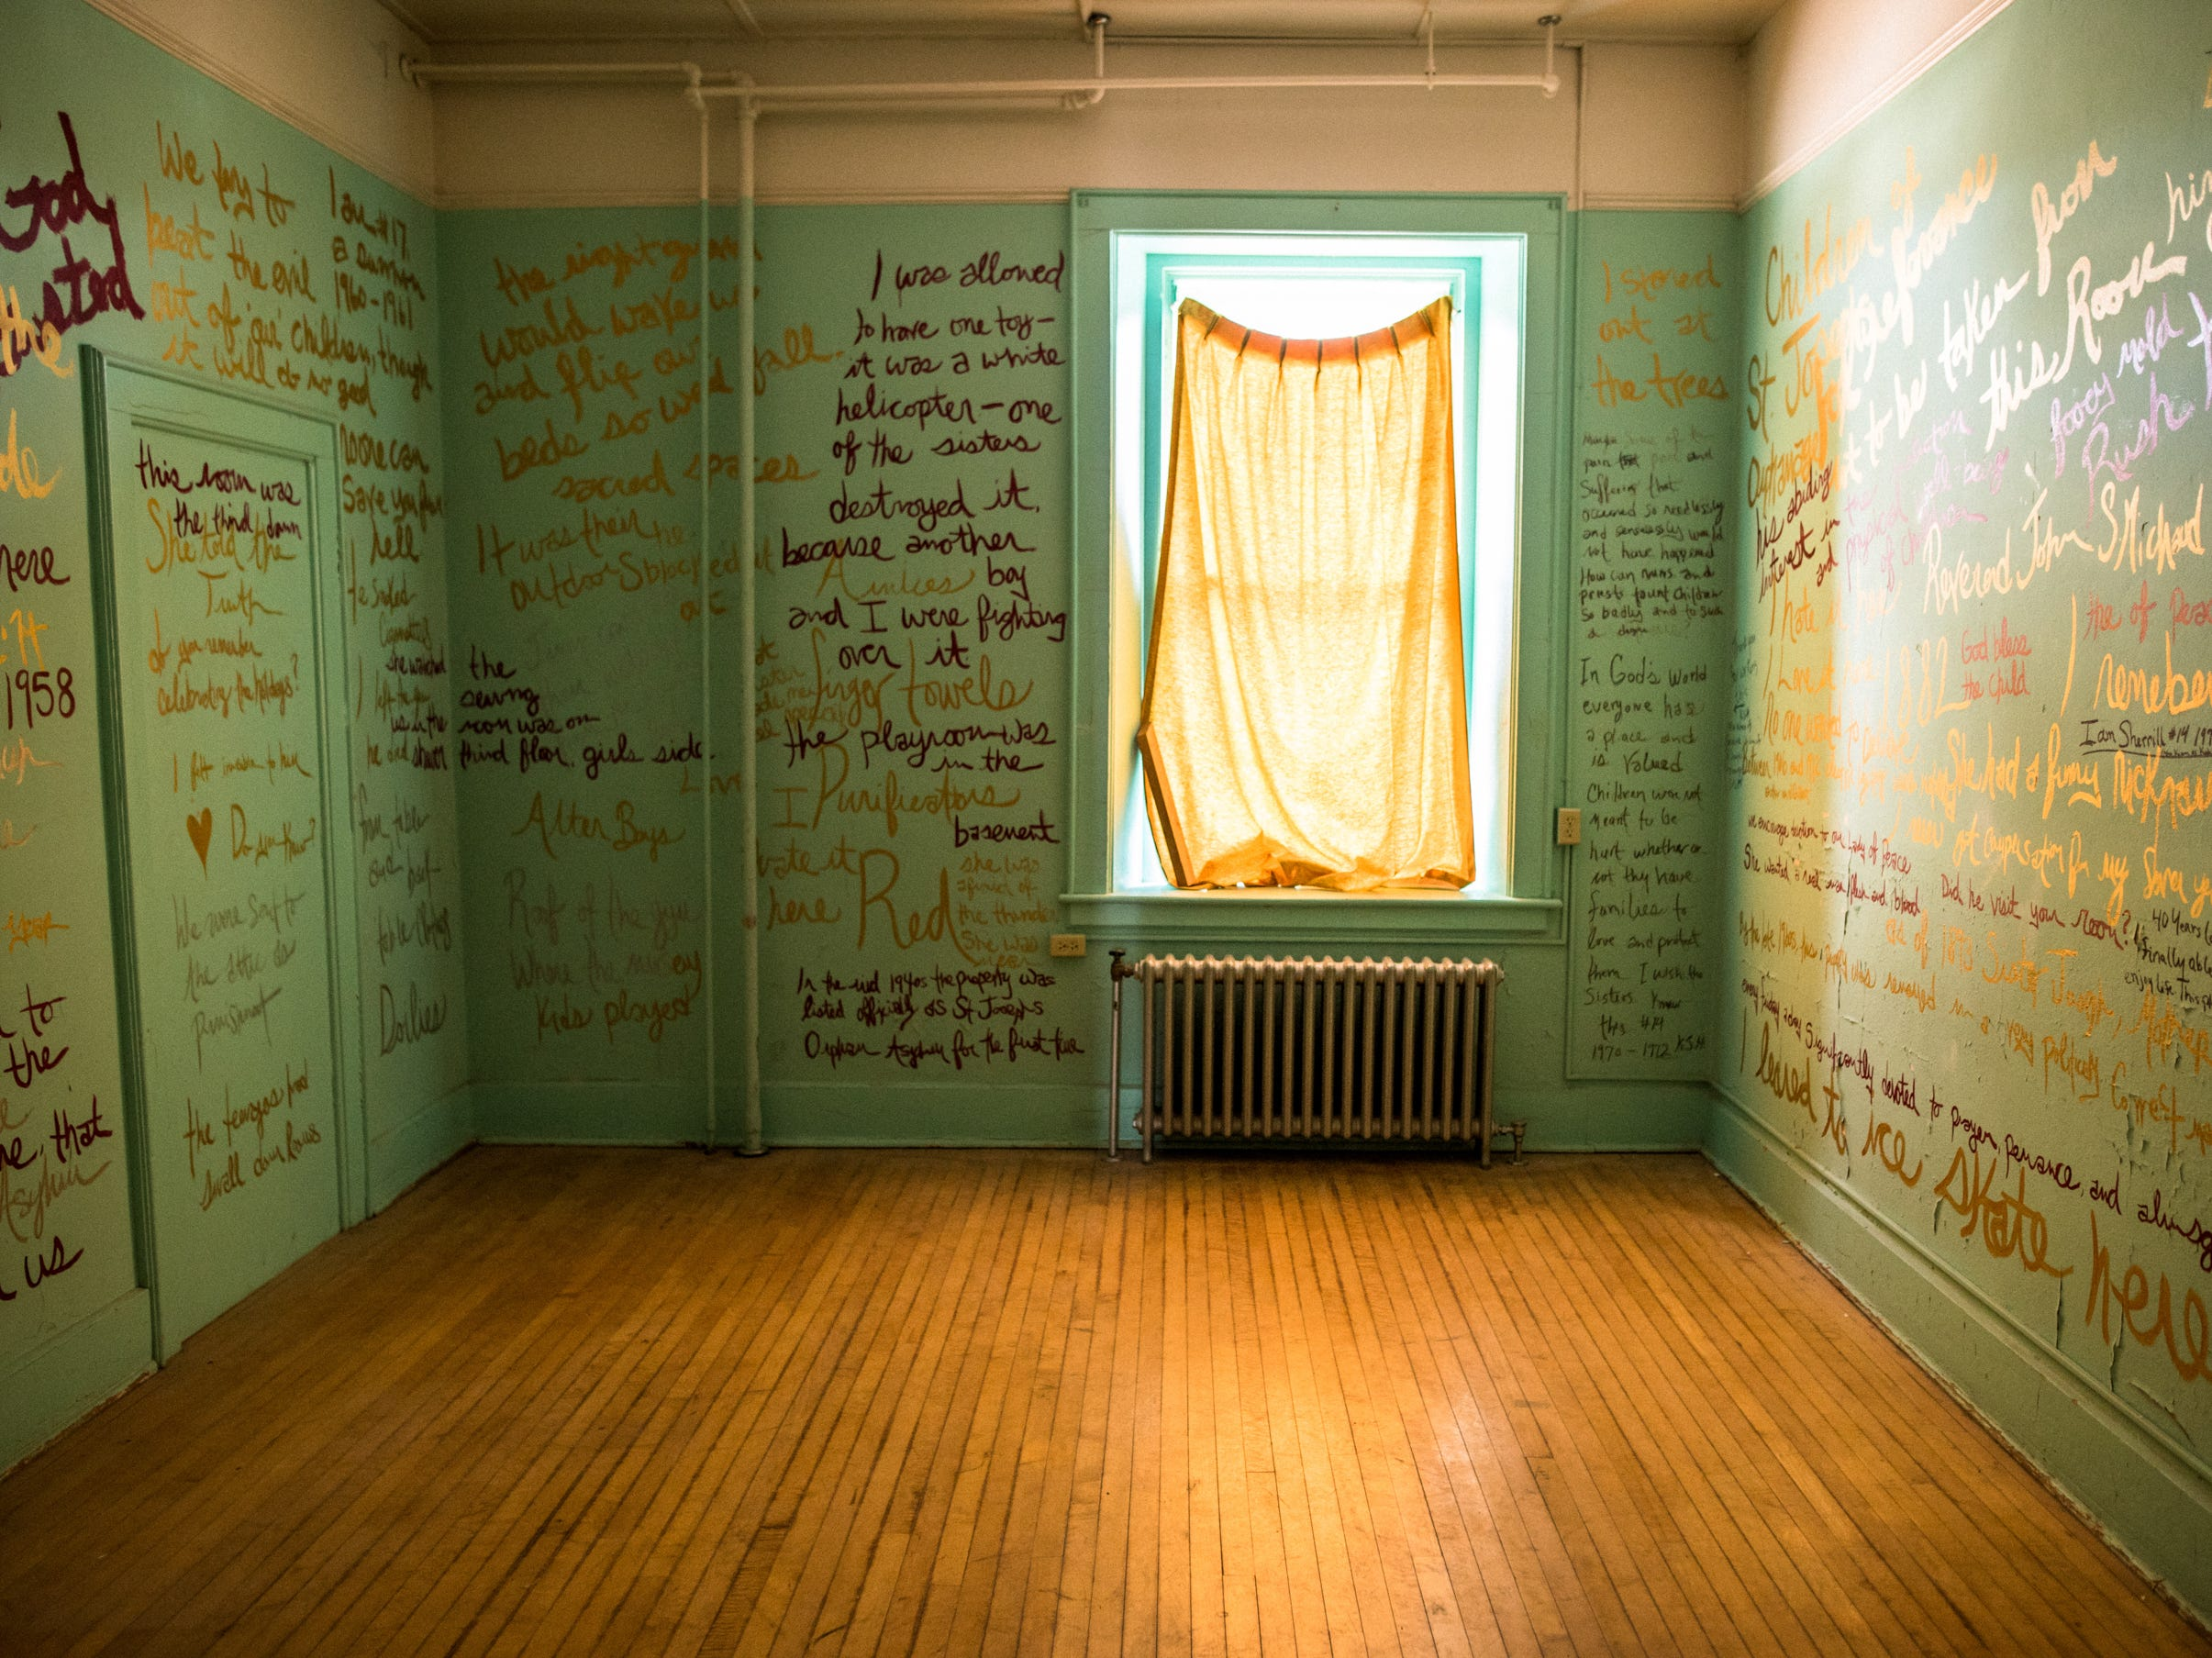 """Quotes found written all over the now-closed St. Joseph's Orphanage in Burlington, Vermont, were painted on the walls of a second-floor room as part of an artwork by Abbey Meaker titled """"The Writing Room."""" It was a portion of an installation-based exhibition called 'An Order"""" organized by Meaker in 2015."""